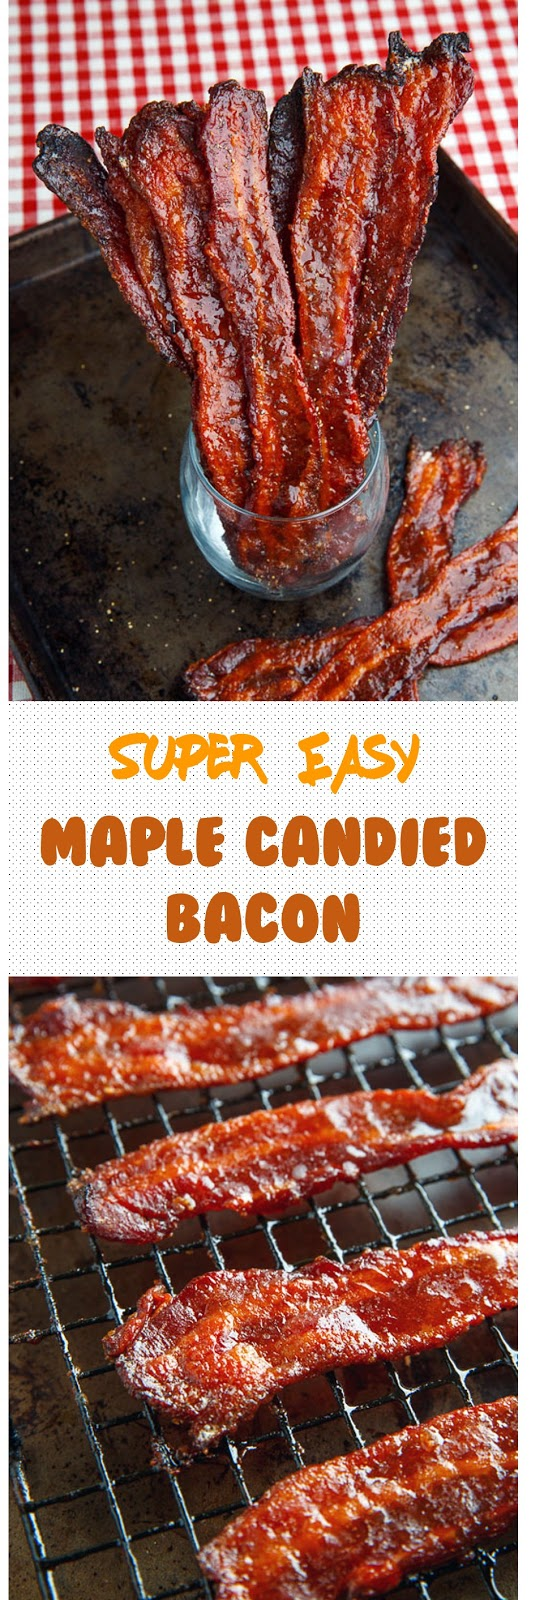 Super Easy Maple Candied Bacon